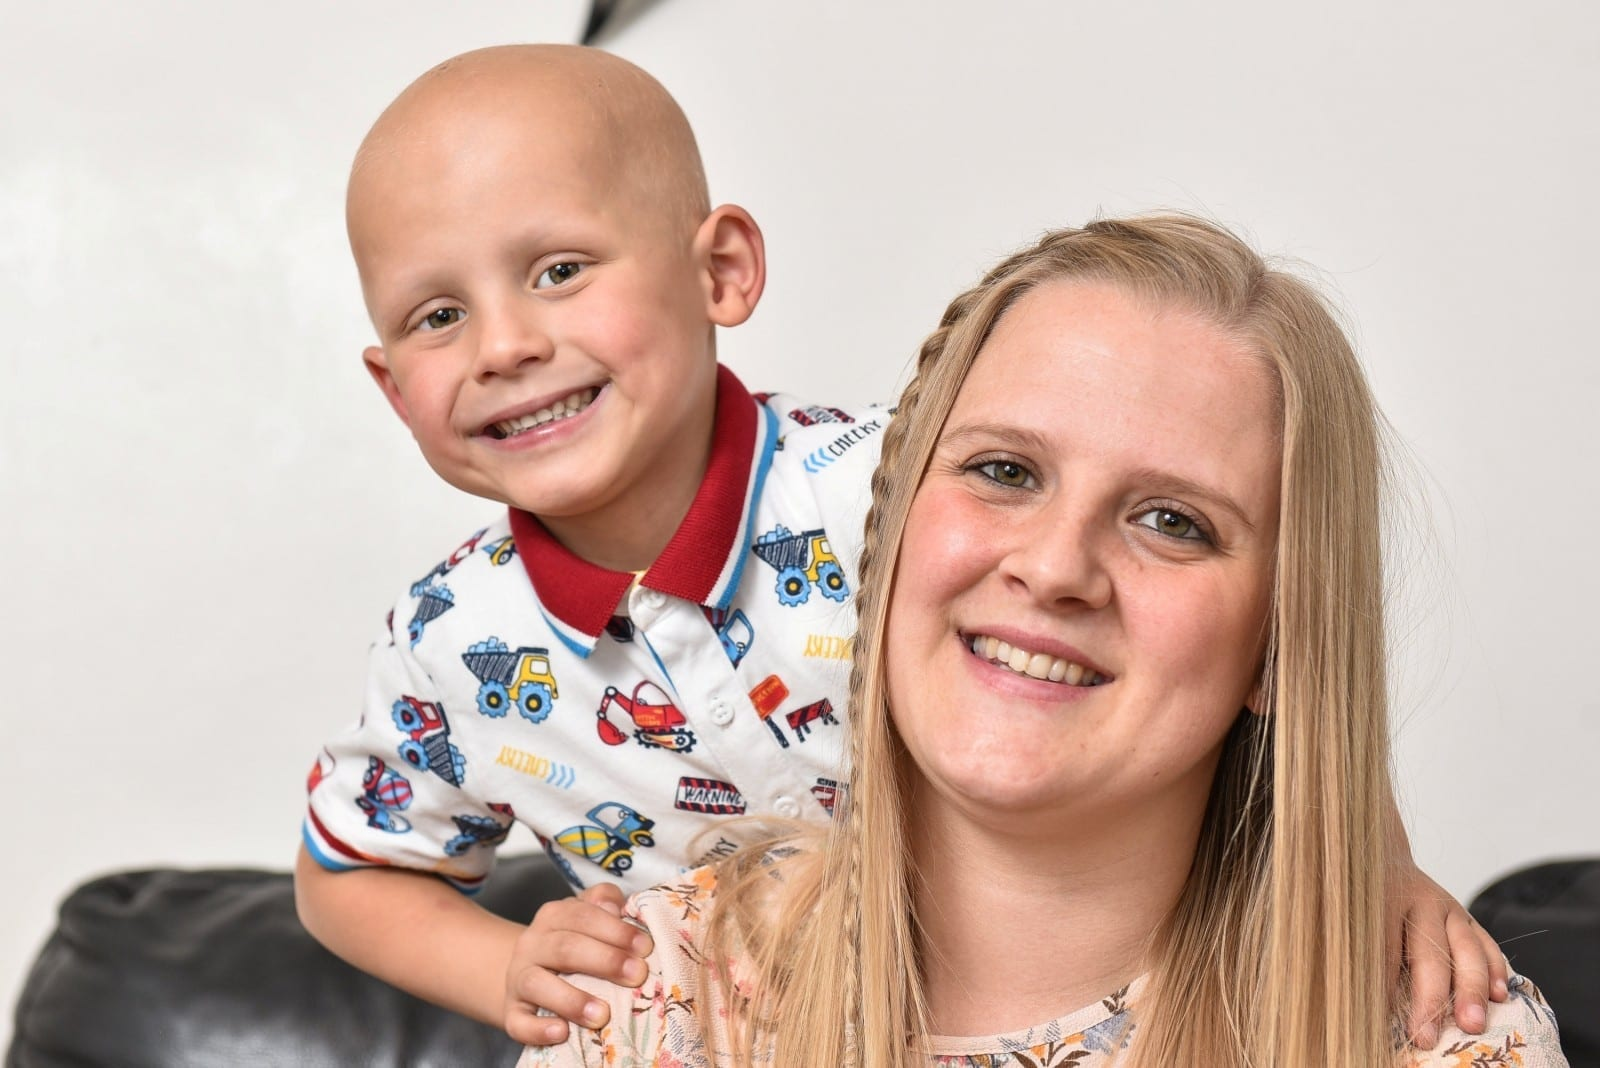 Woman Who Stole £140k From Son's Cancer Fund Keeps Job As Nurse